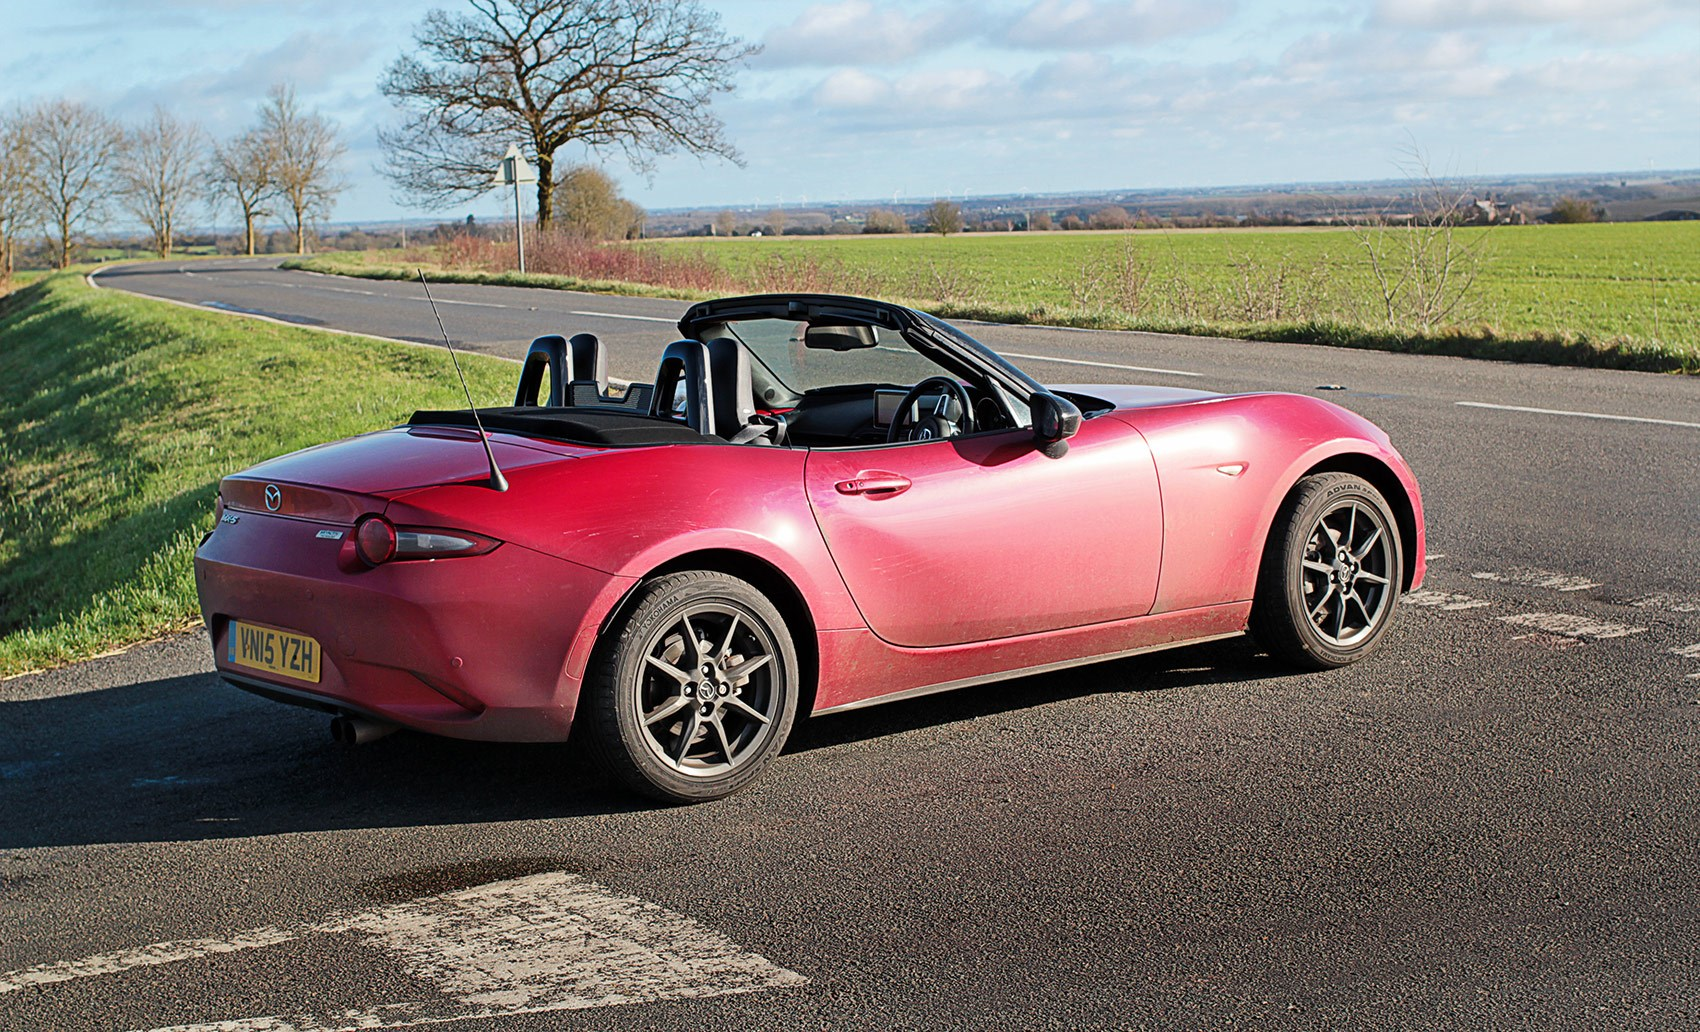 Exceptional MX 5, May We Introduce The Roads You Were Made Foru2026